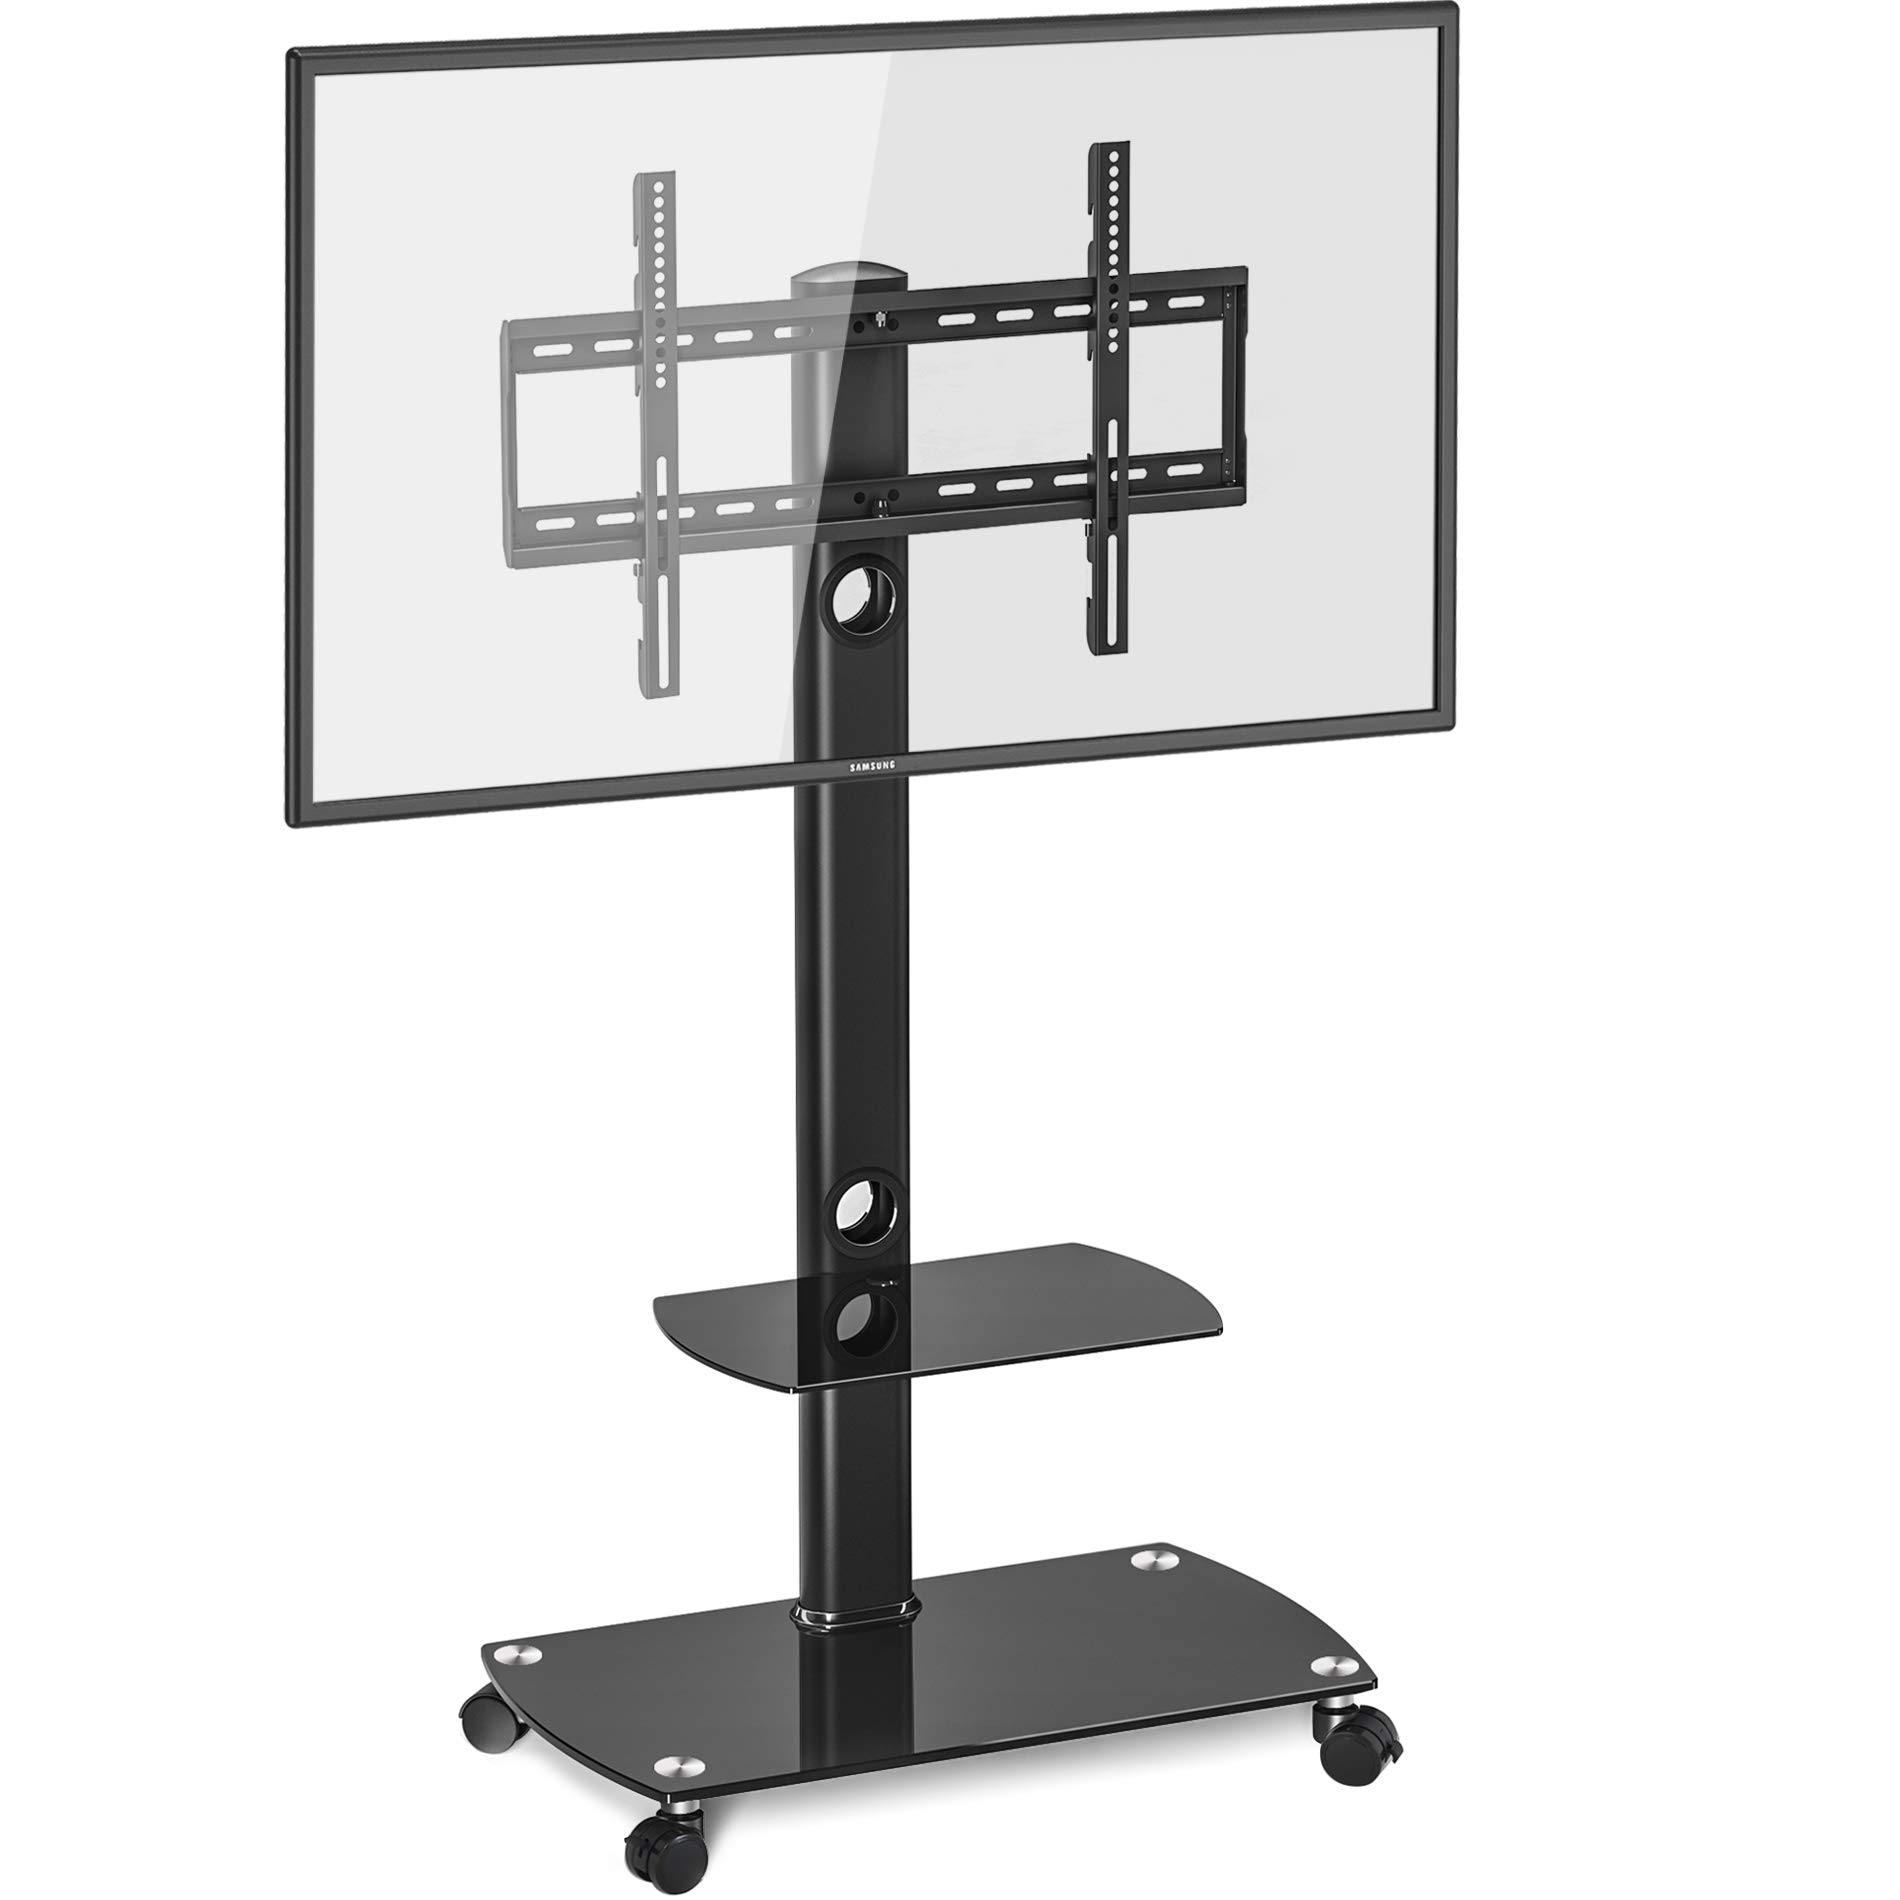 FITUEYES Rolling TV Cart Mobile TV Stand with Wheels and Shelves for 32-65 inch Flat Screen Tvs, TT206503GB